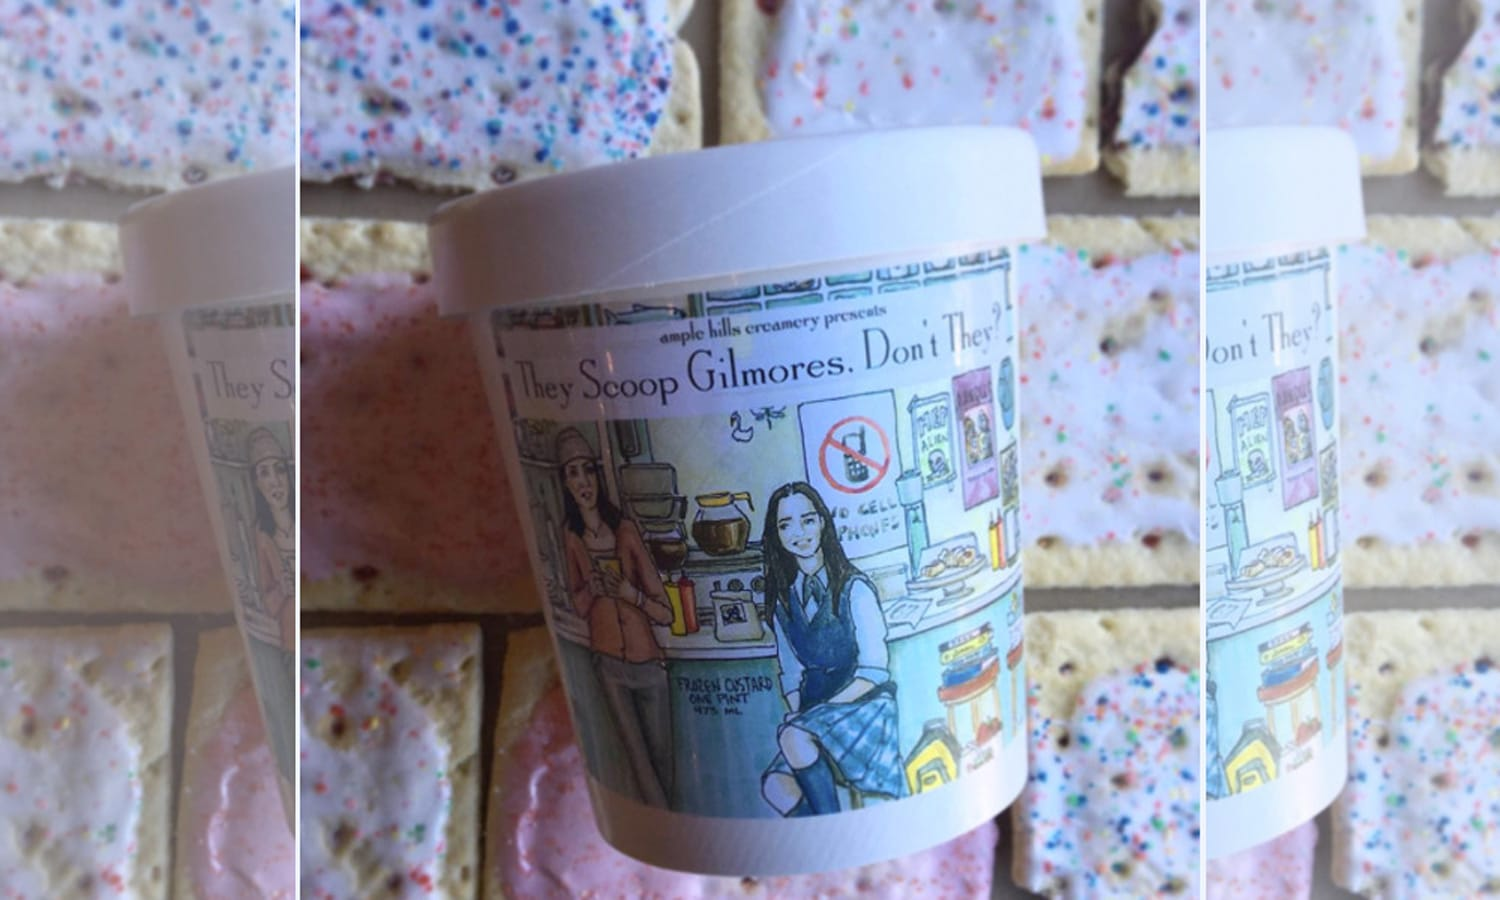 'Gilmore Girls' Has A New Ice Cream Flavor And It's Filled With Junk Food